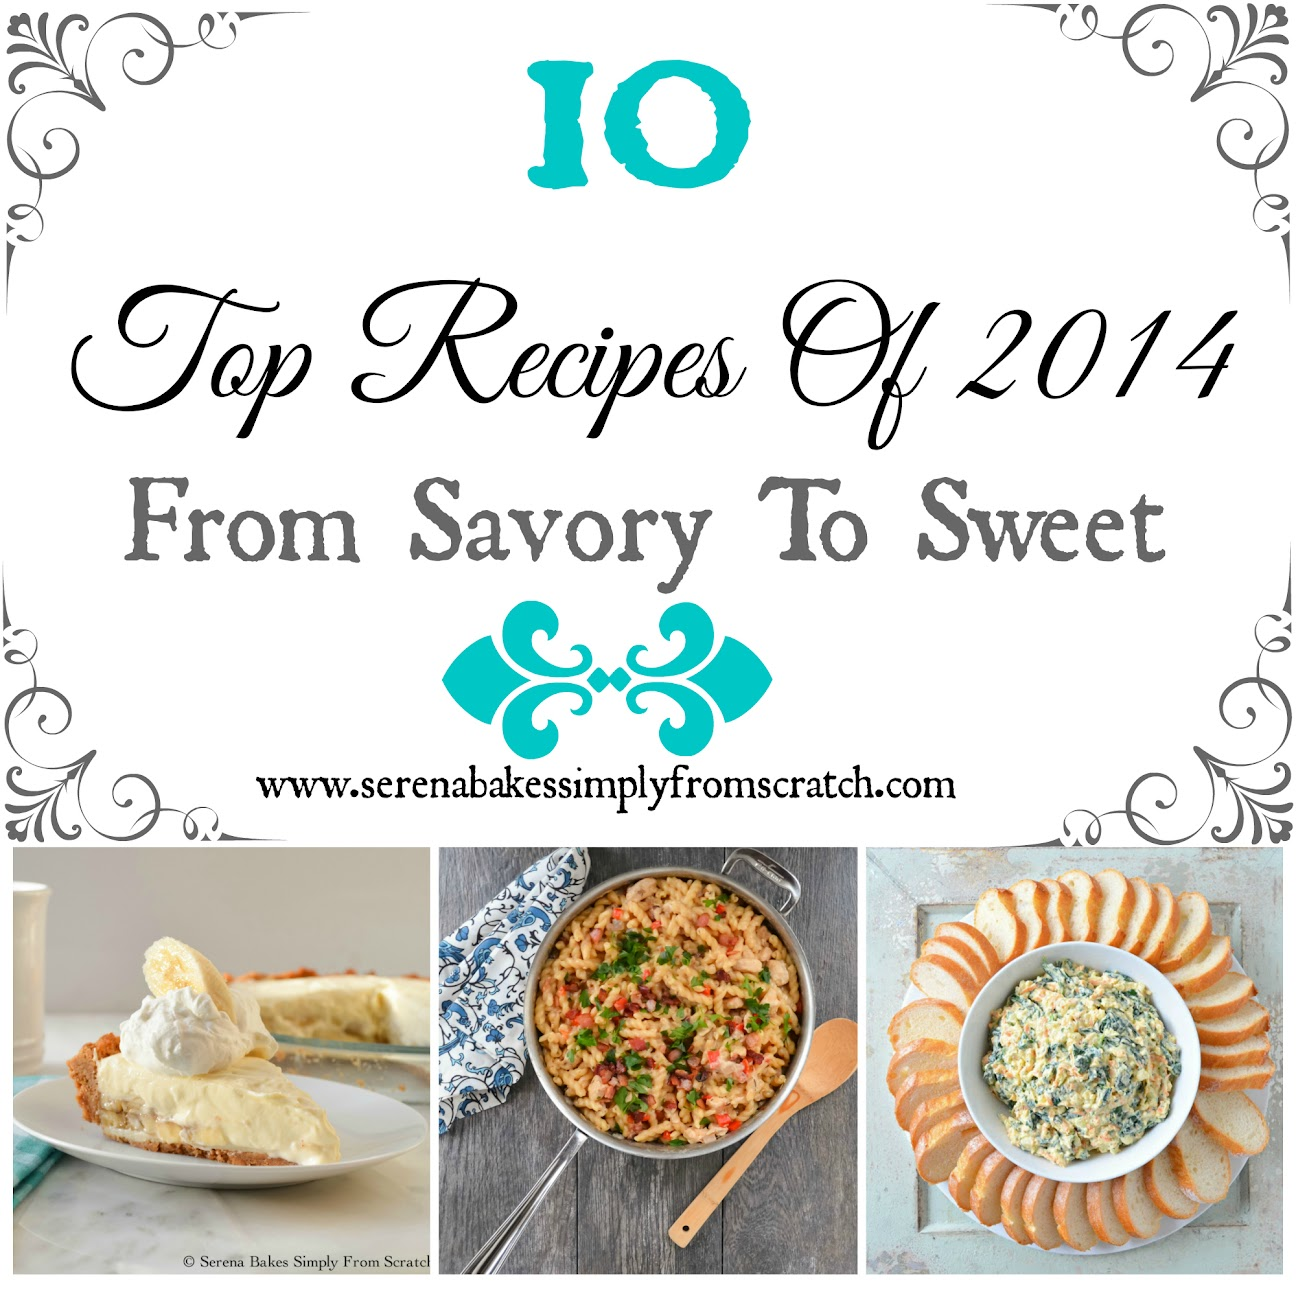 Top 10 Most View Recipes Of 2014 On SerenaBakesSimplyFromScratch.com